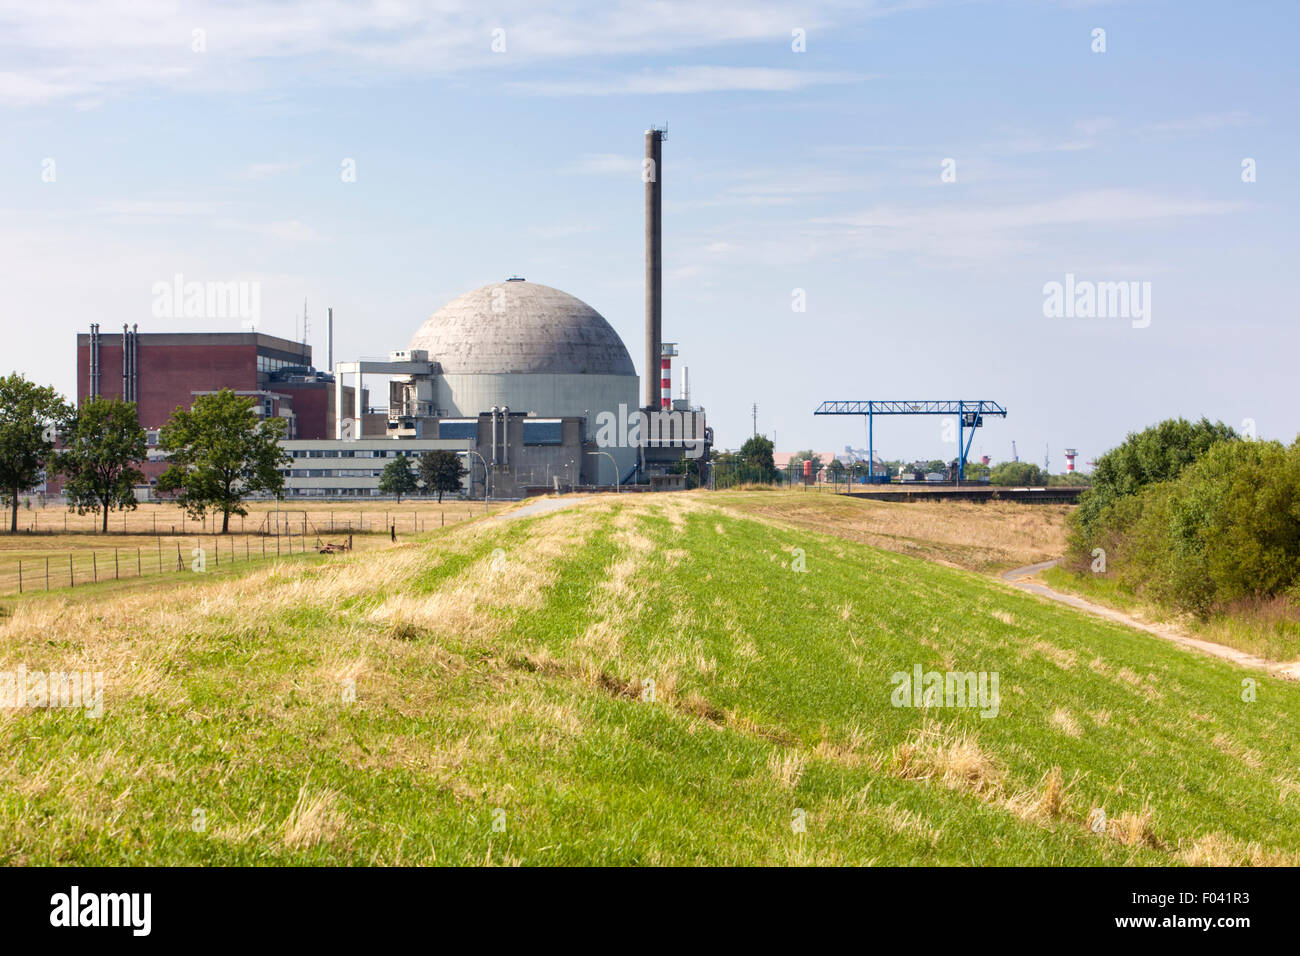 Defunct nuclear power plant at Stade on the Elbe river, Lower Saxony - Stock Image